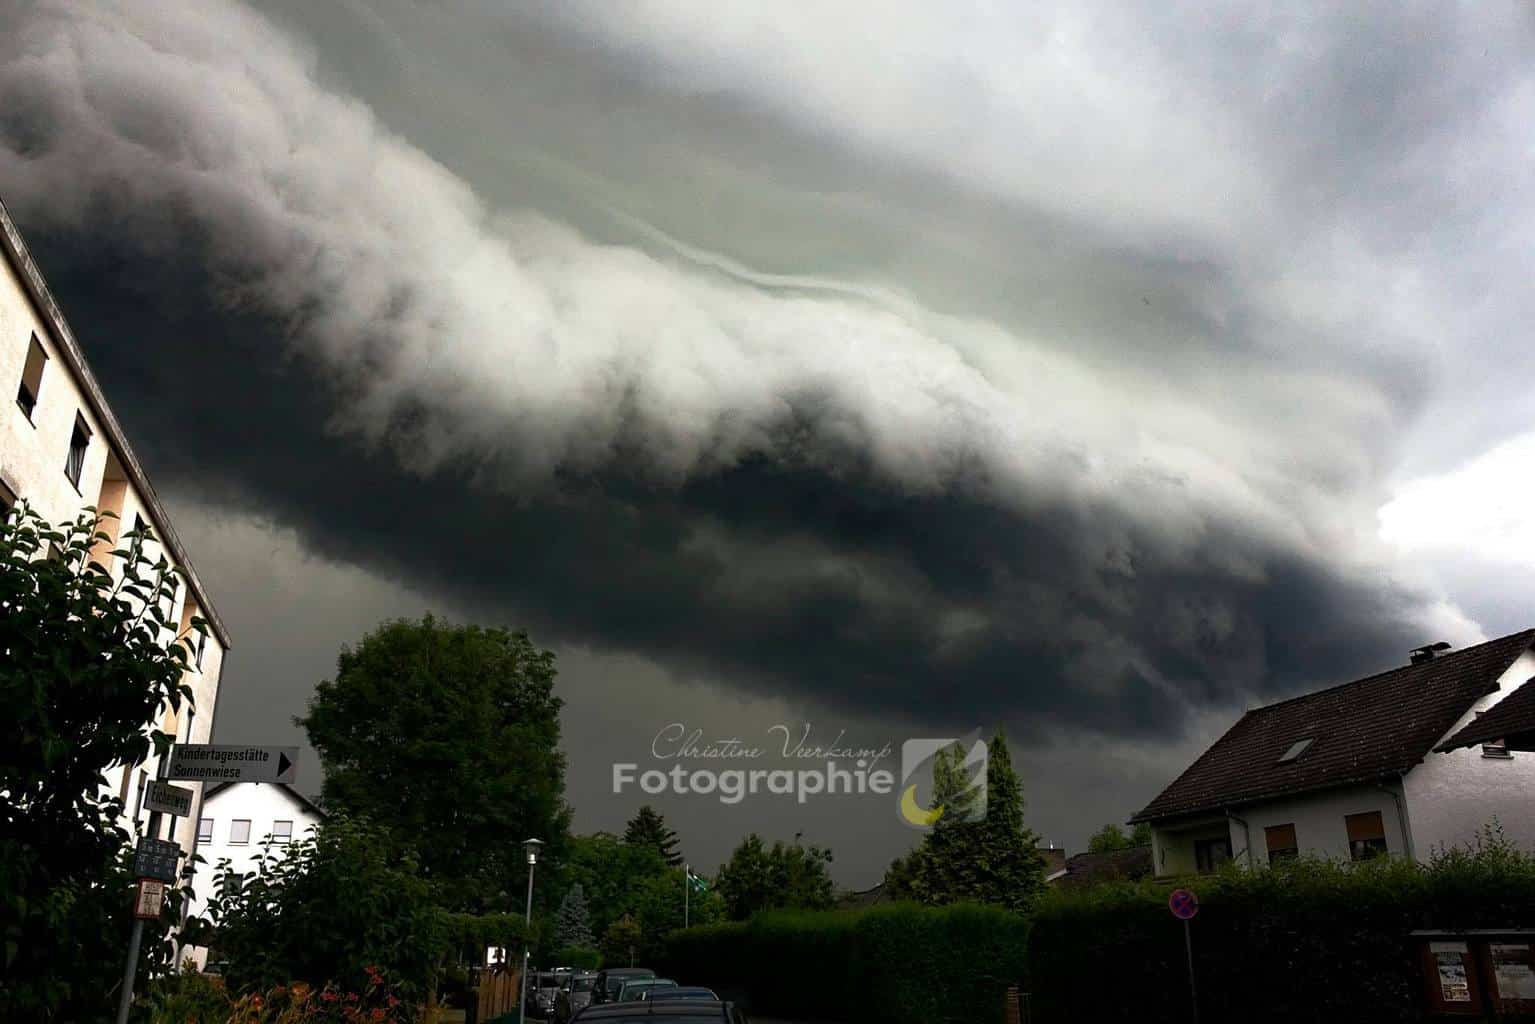 The Wall - 29th June 2017 - Germany When you out for shopping with your relatives in the Area near and notice a massive Storm with a non rotating wall cloud in distance clouds move upwards in massive tempo while you sit in the Car on large parkdrive of a Shopping Center and cant move .....your excitement rise.Cant wait to go home or stay ahead of it ... 10 min later a long line of shelf cloud forms....we drive home get ahead , not to get overrun by the rain and possible Hail ,the cloud almost crawls over the horizon and almost home the Sky has become dark grey and cloudy scuds.The Tempo had suddenly rised. At home run like the wind upstairs, grab my still cam, downtairs again ...and i got this incredible Image. Call it a unexpected Stormchase.